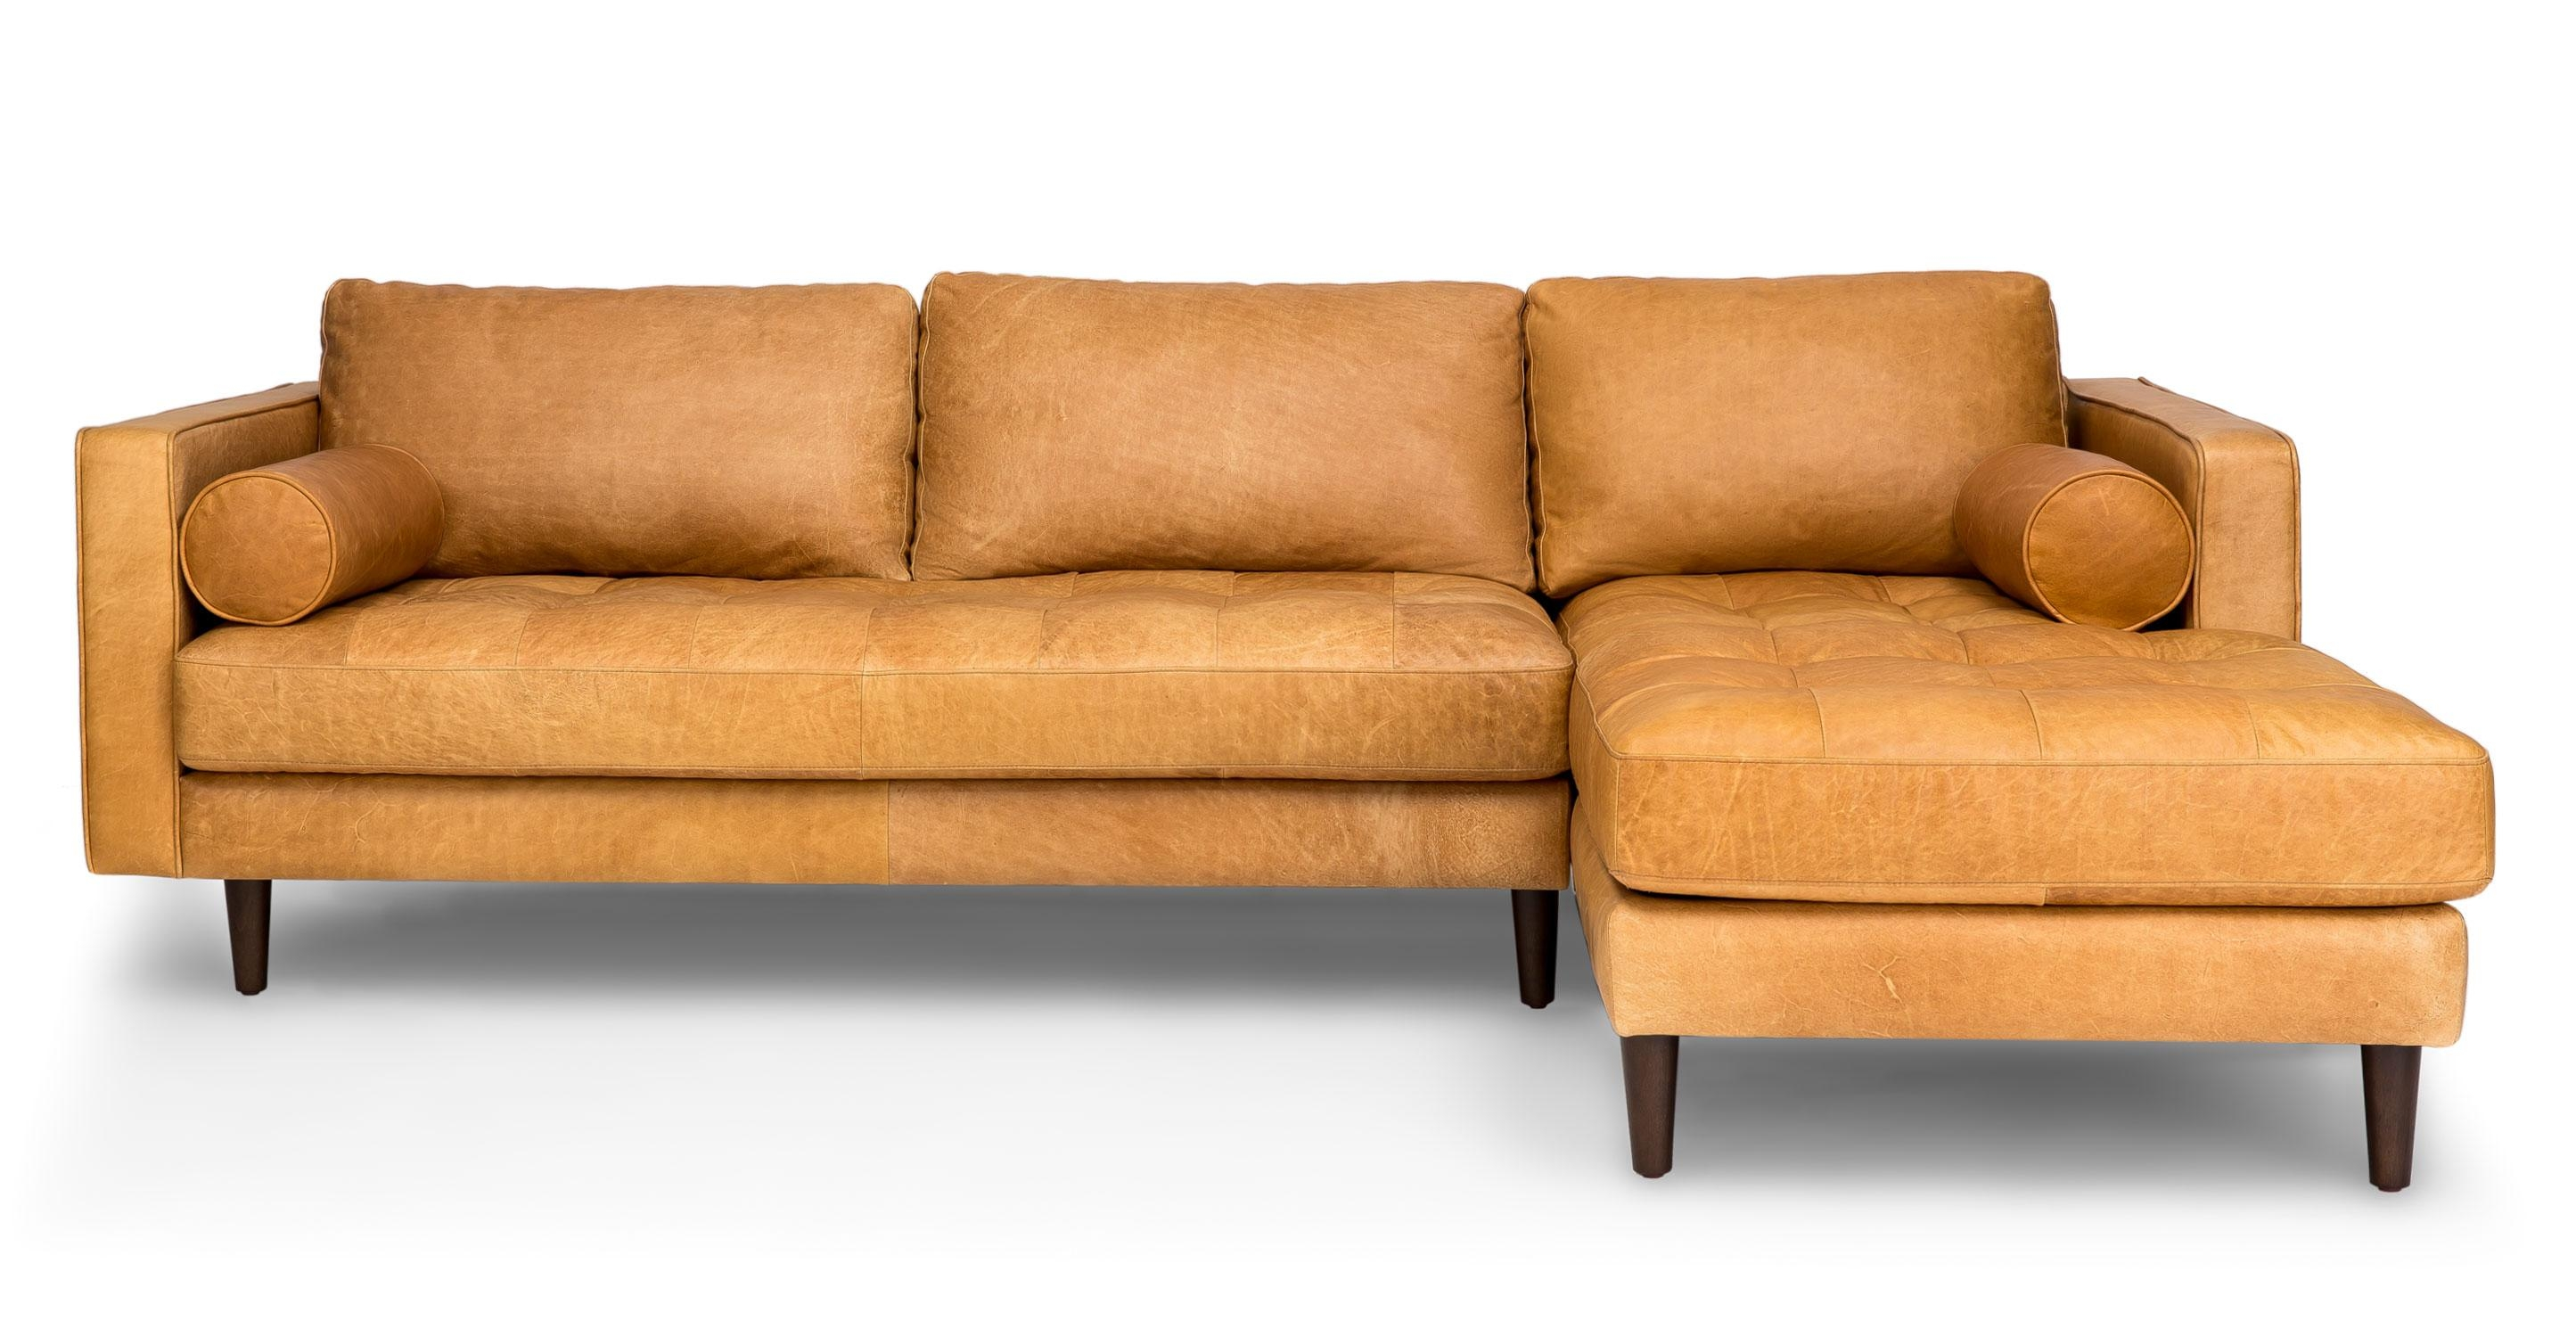 Modern Sectional Sofa Toronto (Image 15 of 15)